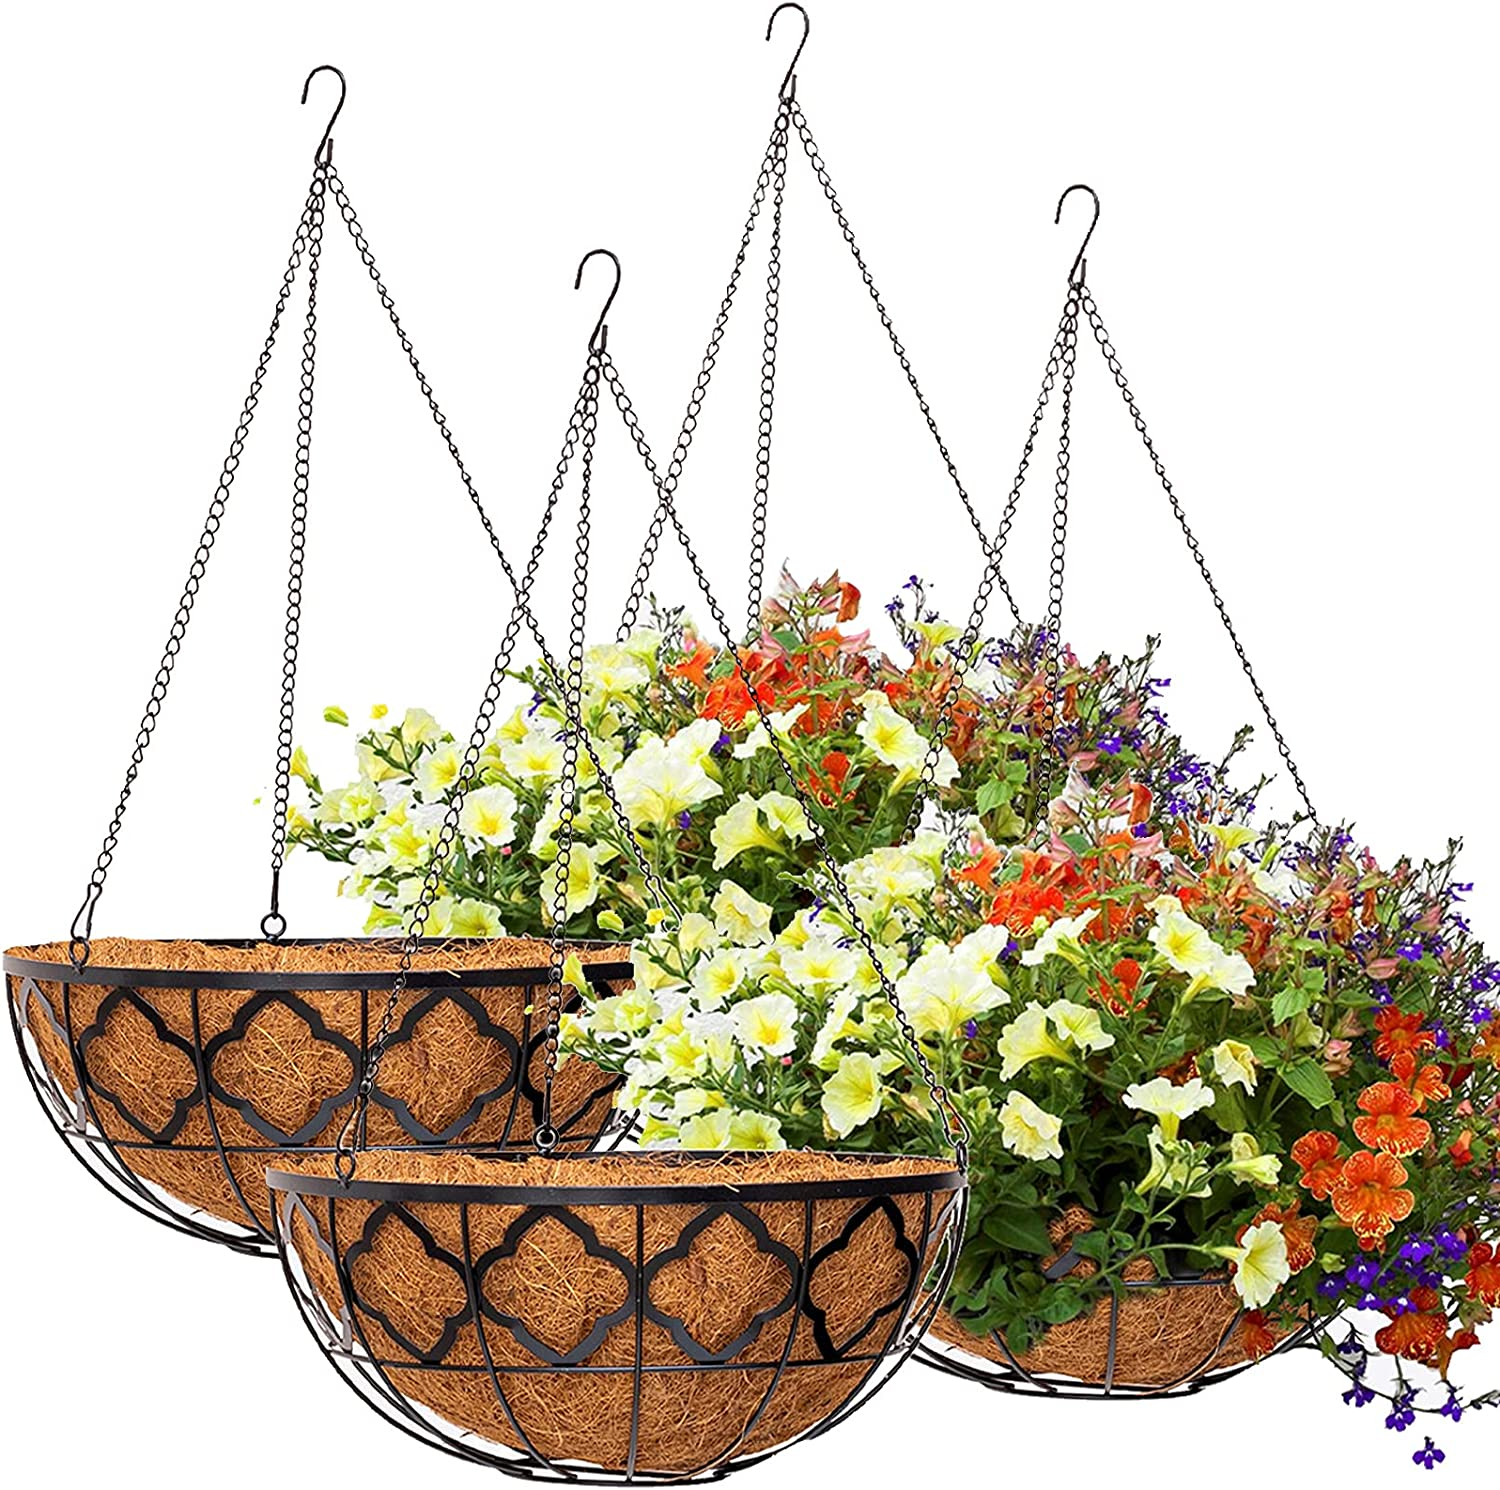 HFHOME 4PCS 14 inch Metal Hanging Planters Basket with Coco Liner,14